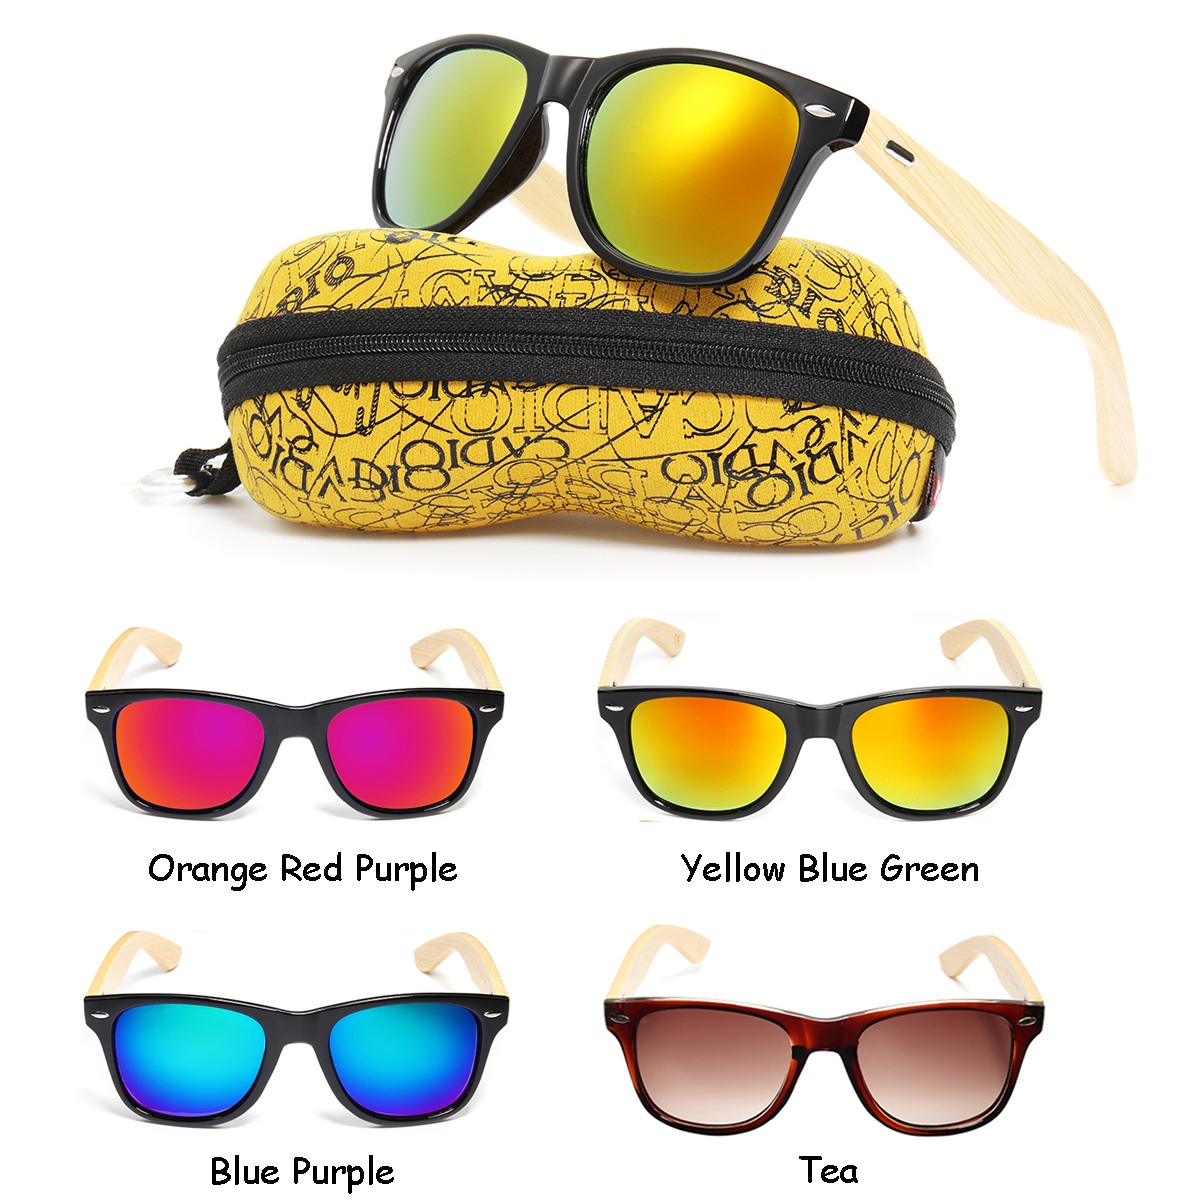 092c1bc74c Detail Feedback Questions about Men Women Retro Vintage Sunglasses UV400  Outdoor Climbing Glasses Anti glare Driving Goggles Cycling Hiking Fishing  Eyewear ...